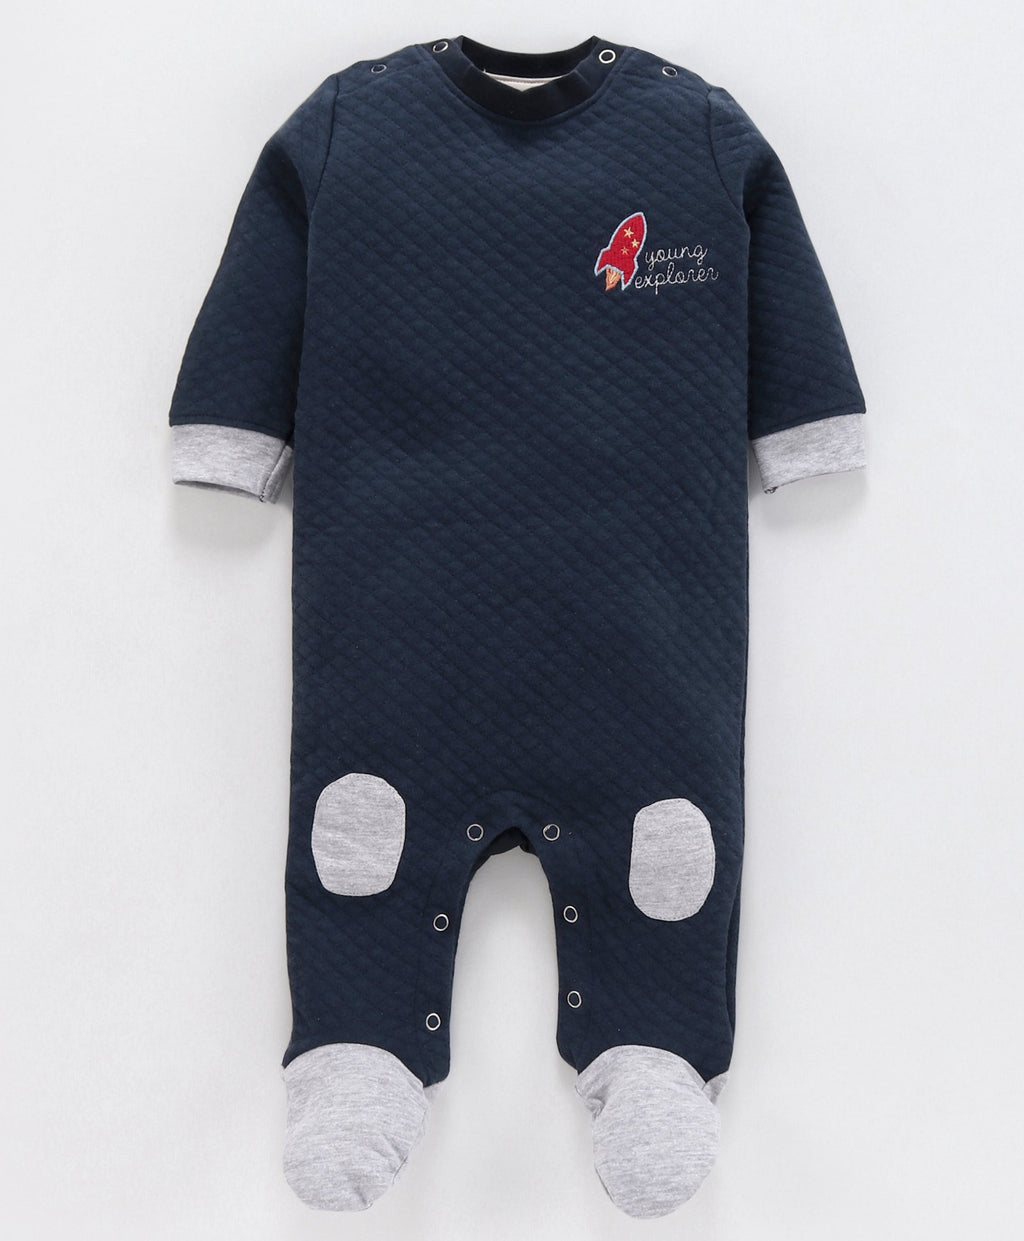 JusCubs Rocket Patch Full Sleeves Romper - Navy Blue